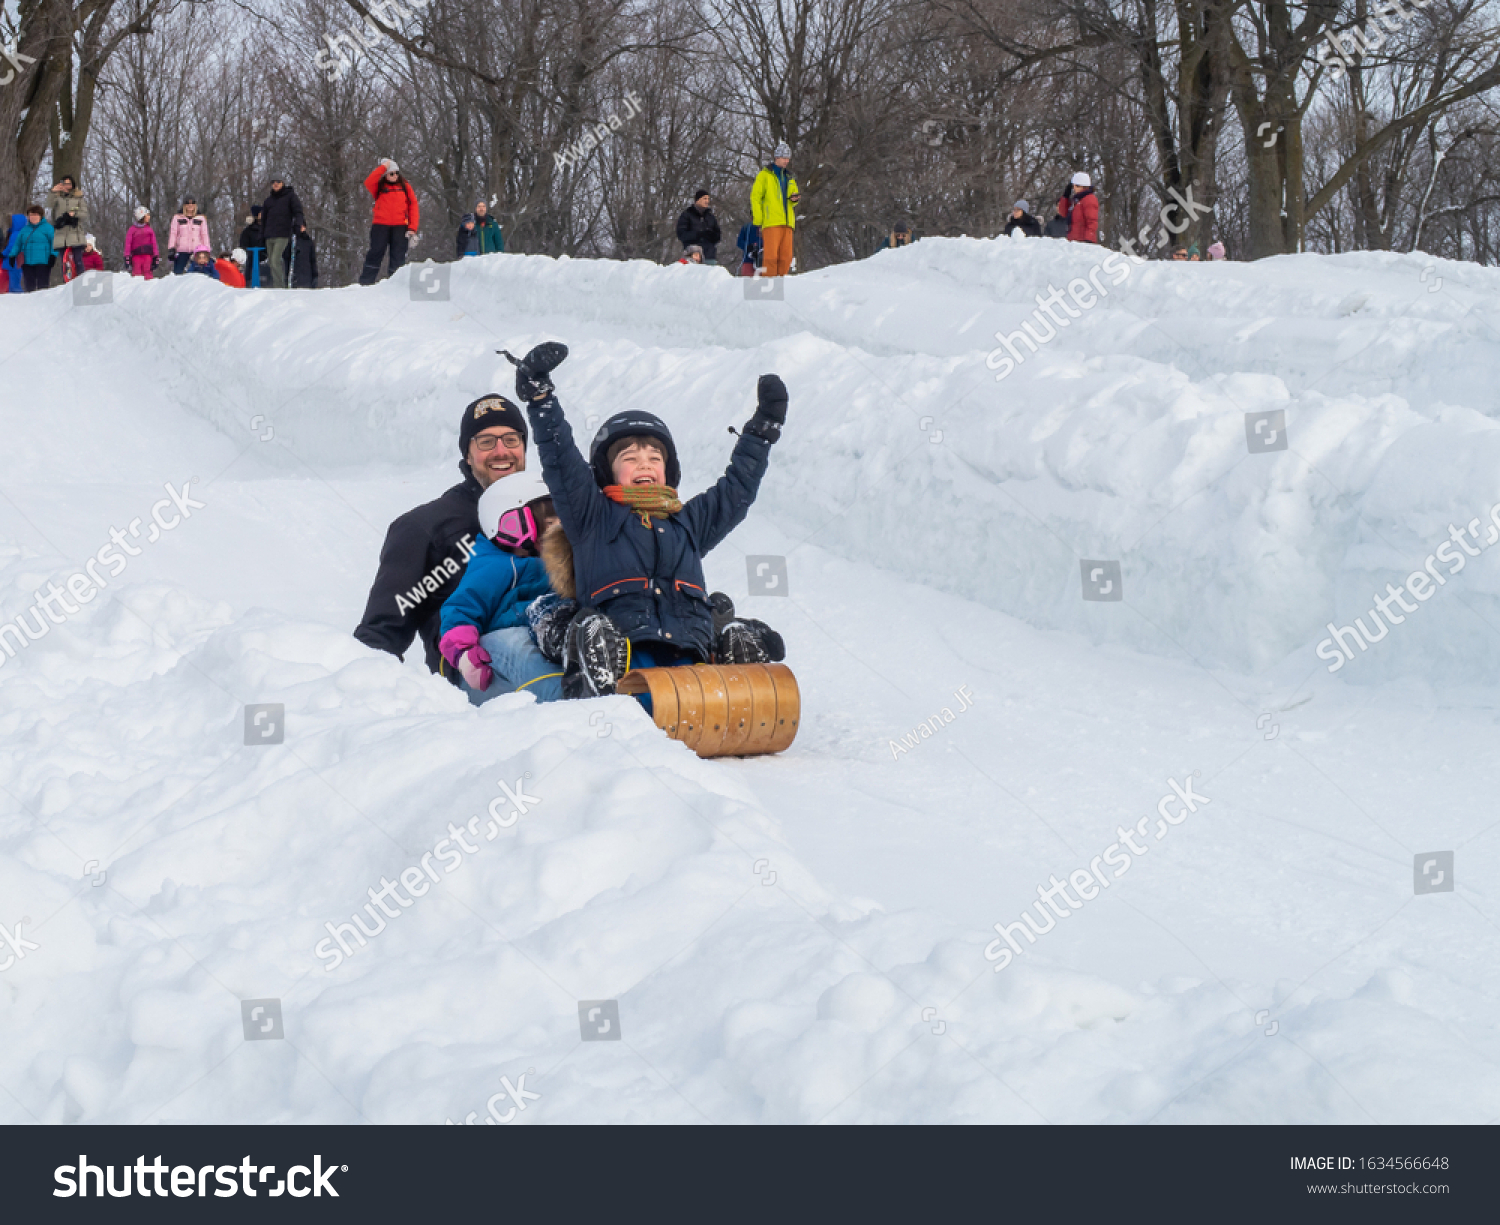 stock-photo-montreal-canada-february-man